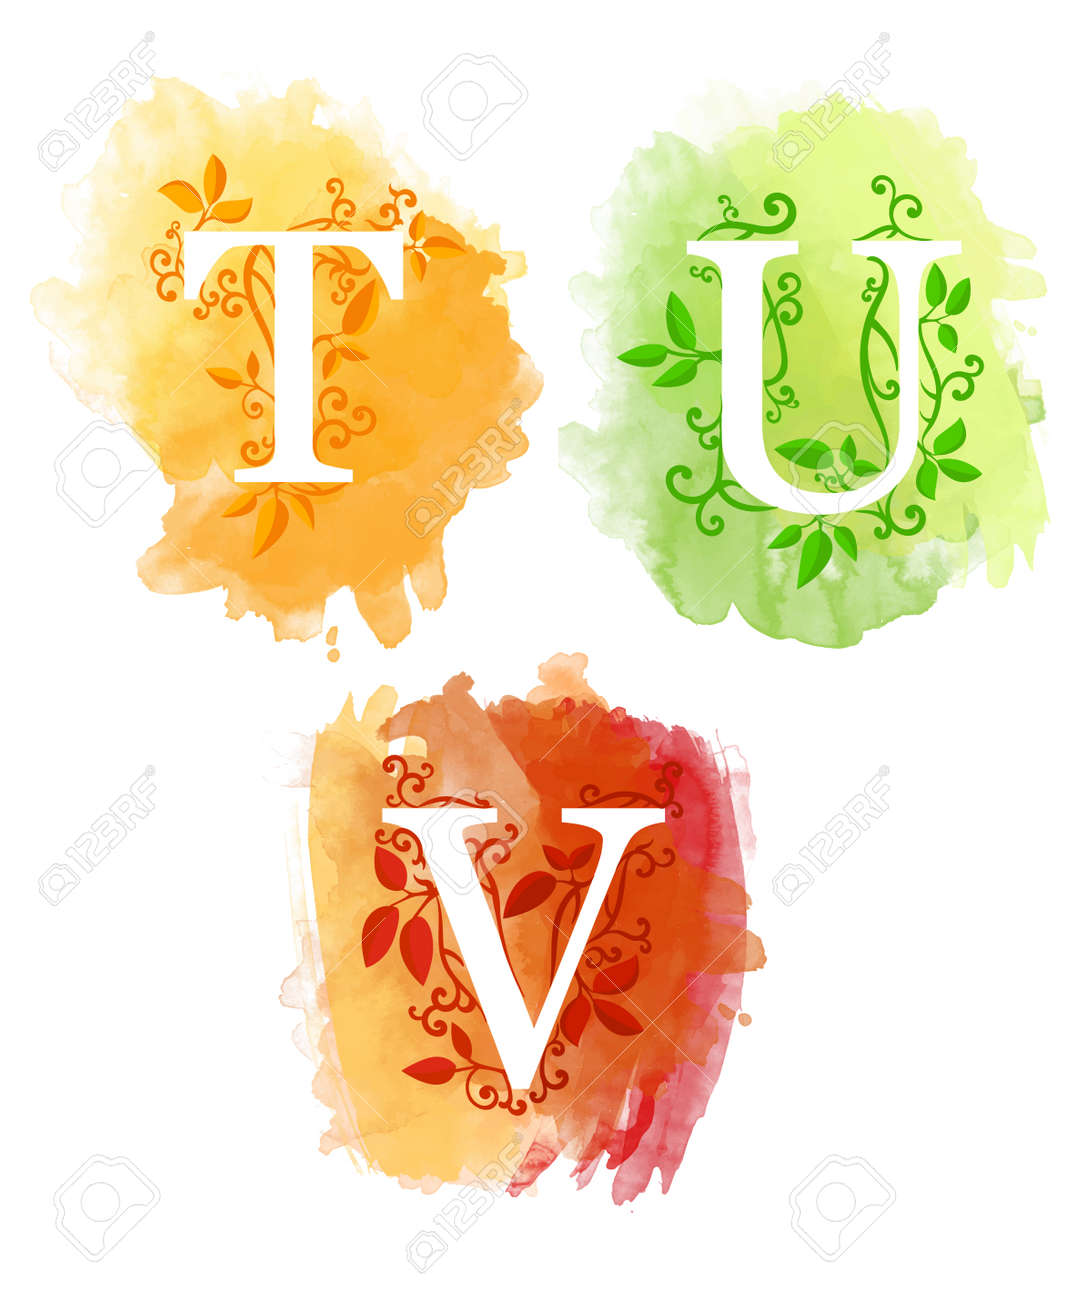 Alphabet with watercolor background white letters t u v and young